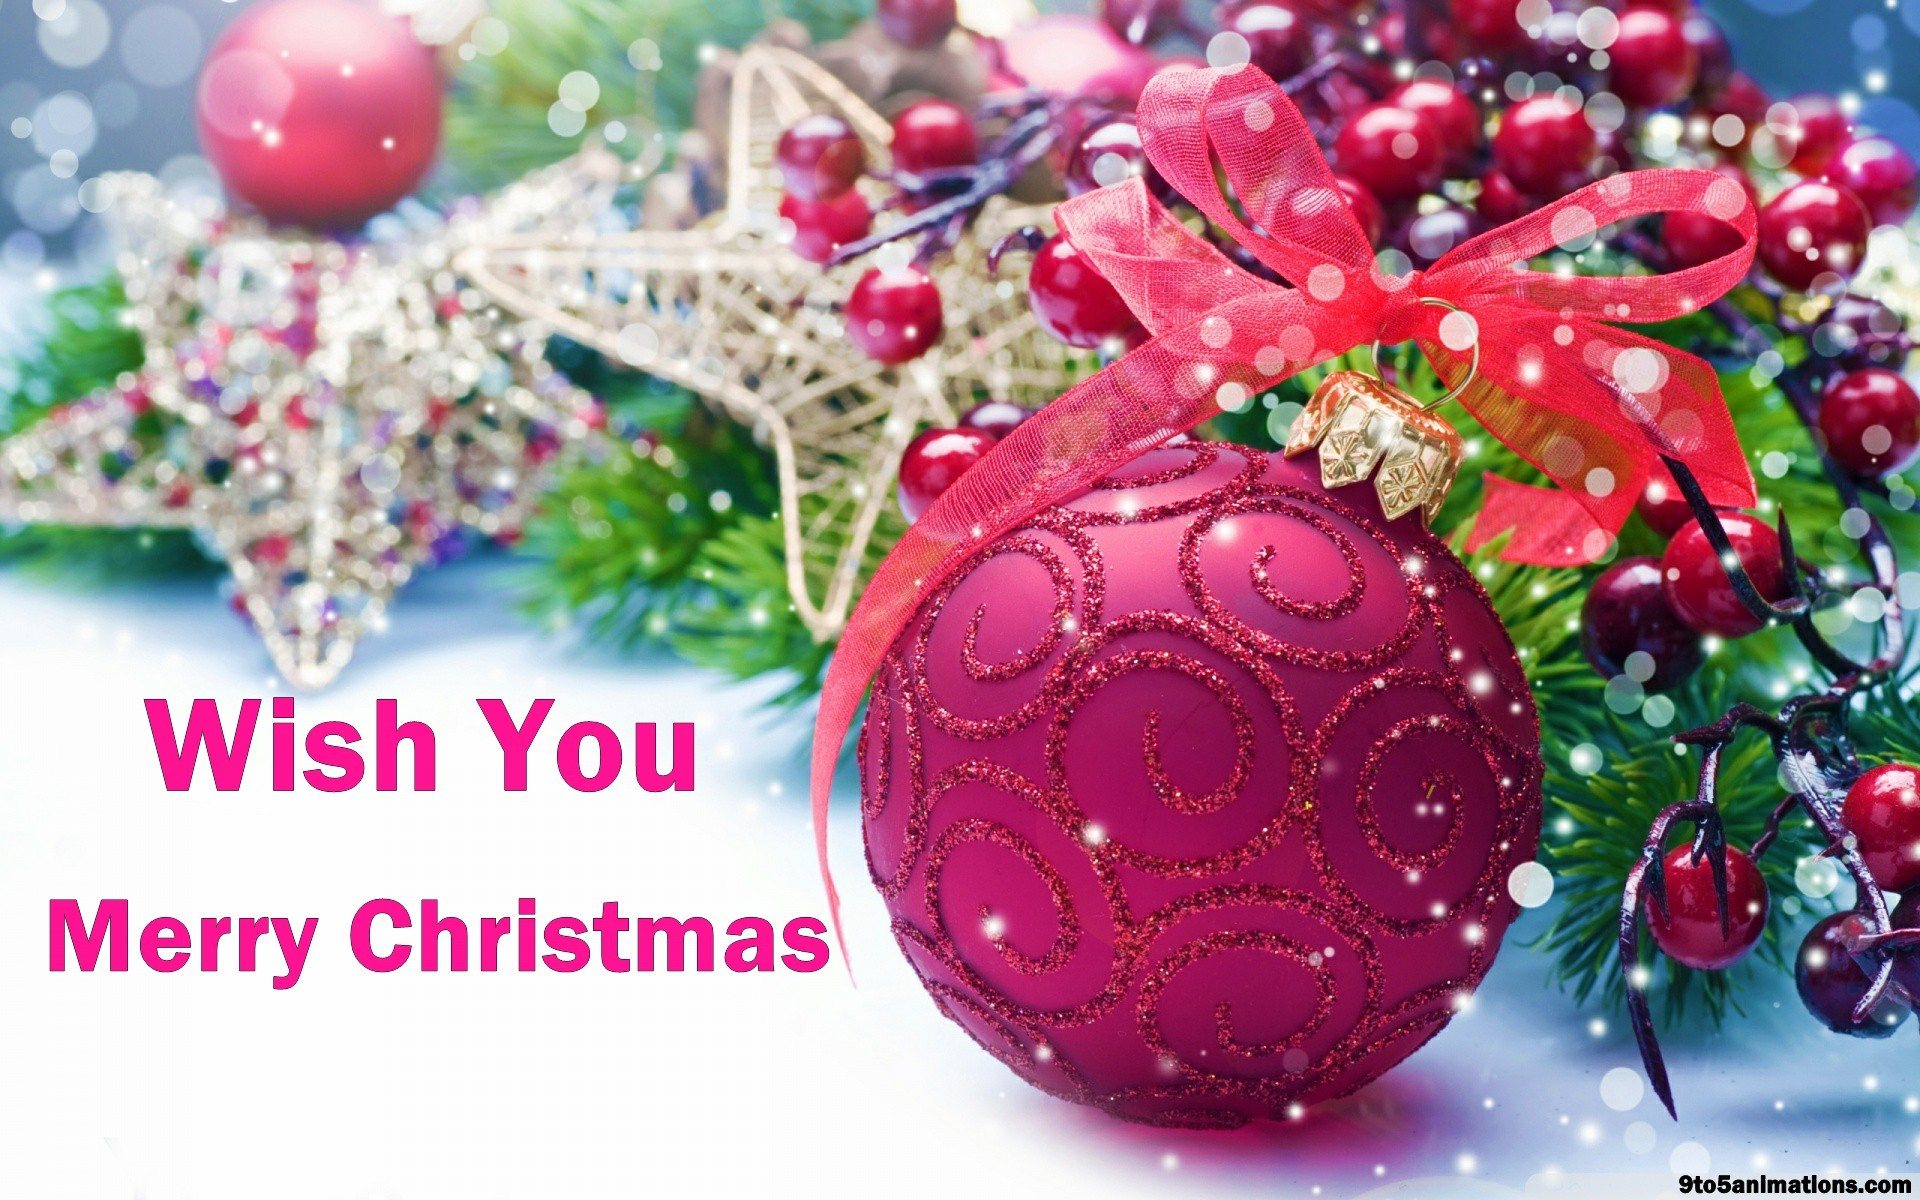 Merry Christmas wishes high definition desktop backgrounds